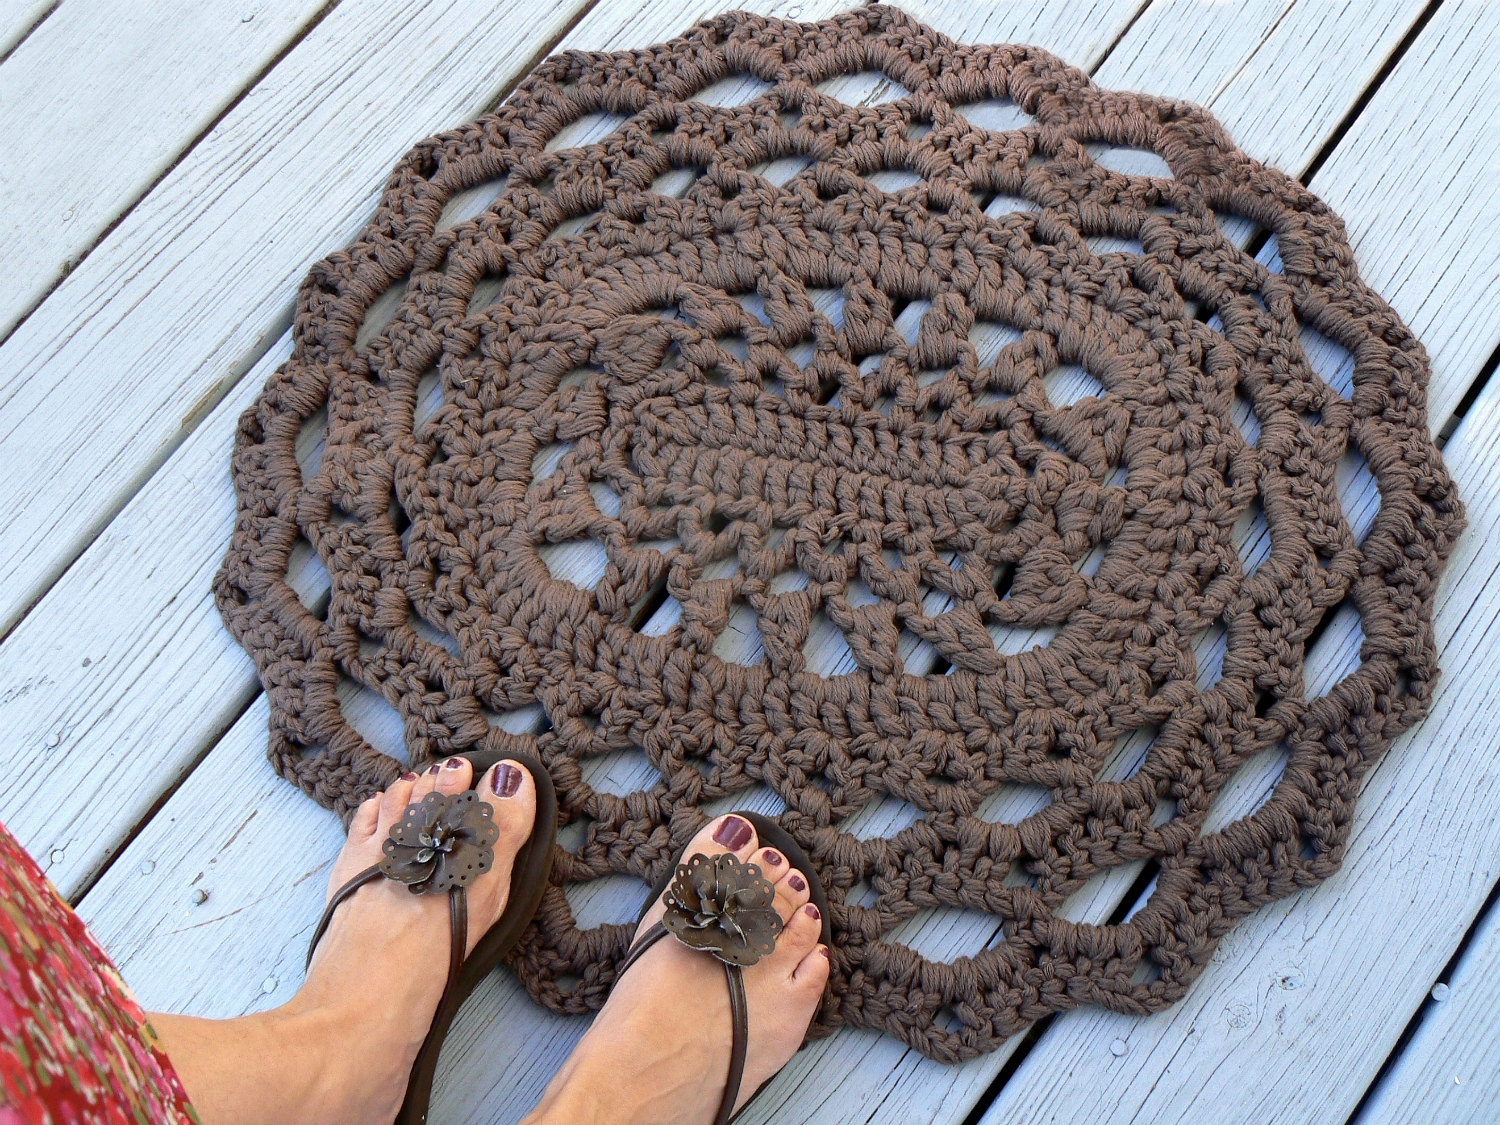 Dark Taupe Bath Rugscotton oval lace thick doily kitchen or bath rug crocheted in dark